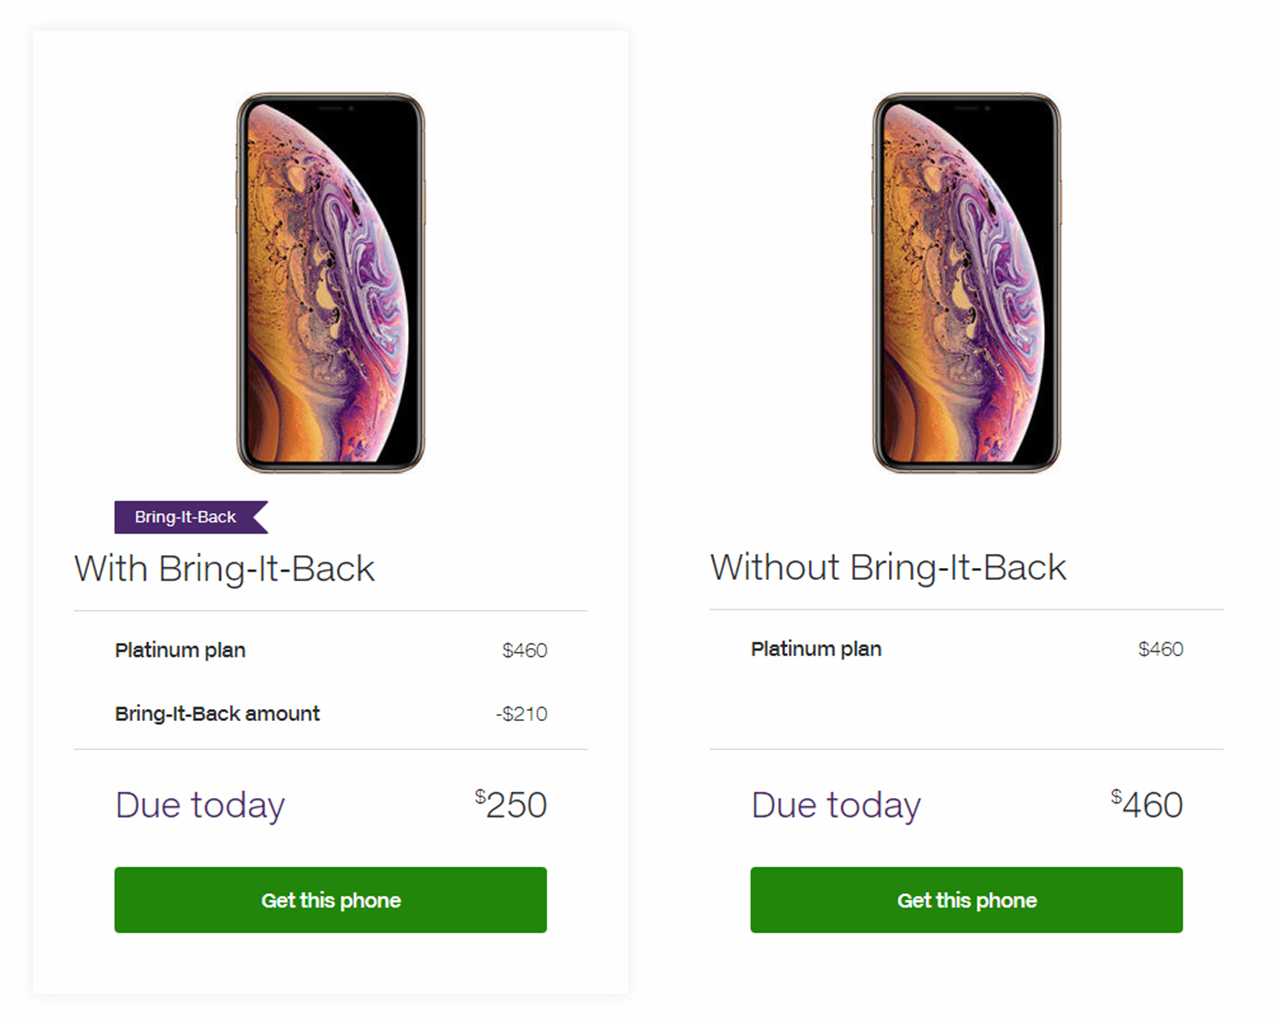 Telus Bring-it-Back example